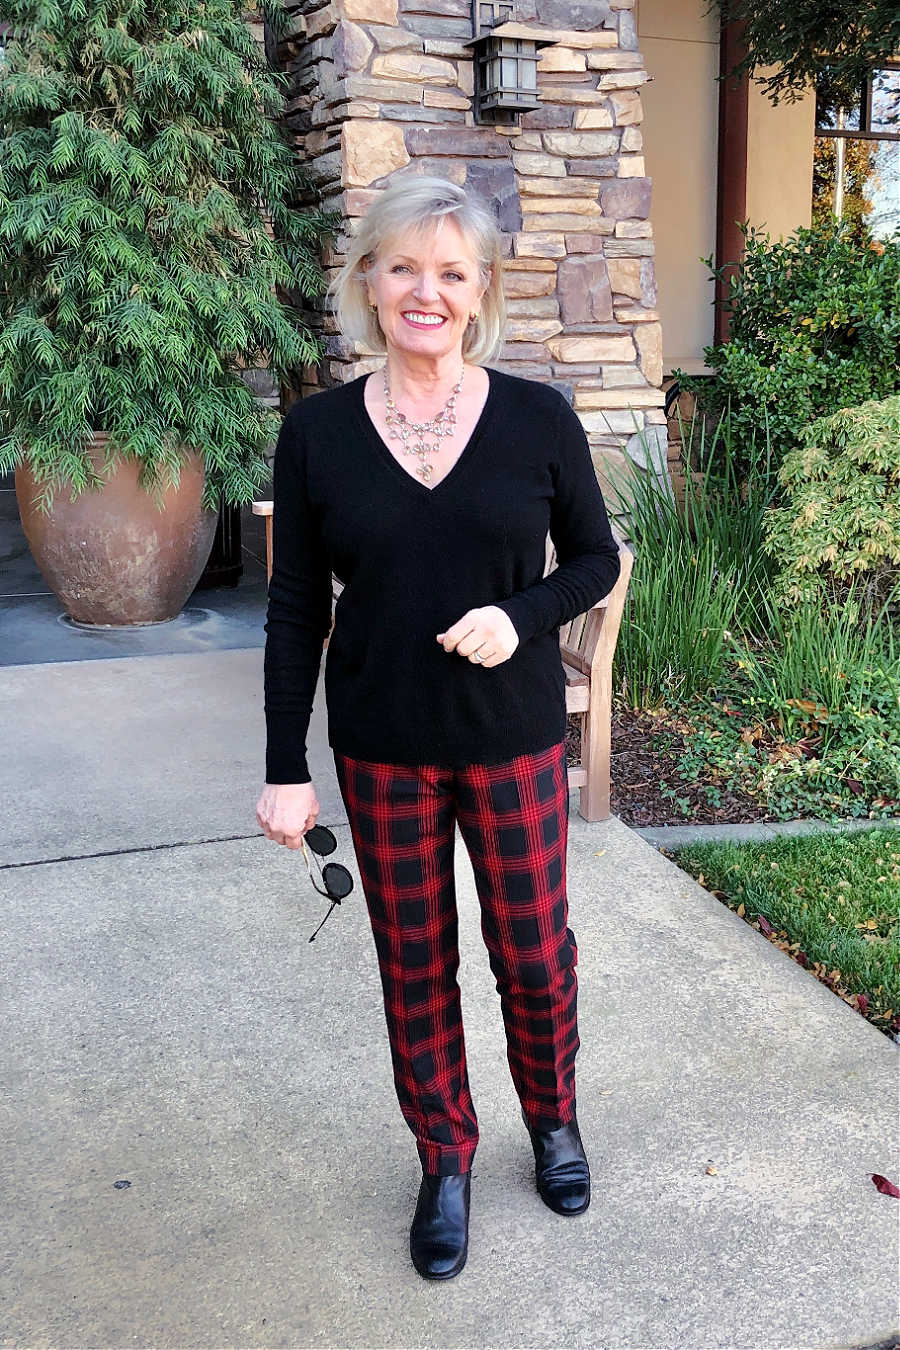 over 50 fashion blogger jennifer connolly of a well styled life wearing everlane black sweater with red and black checked pants from j jill